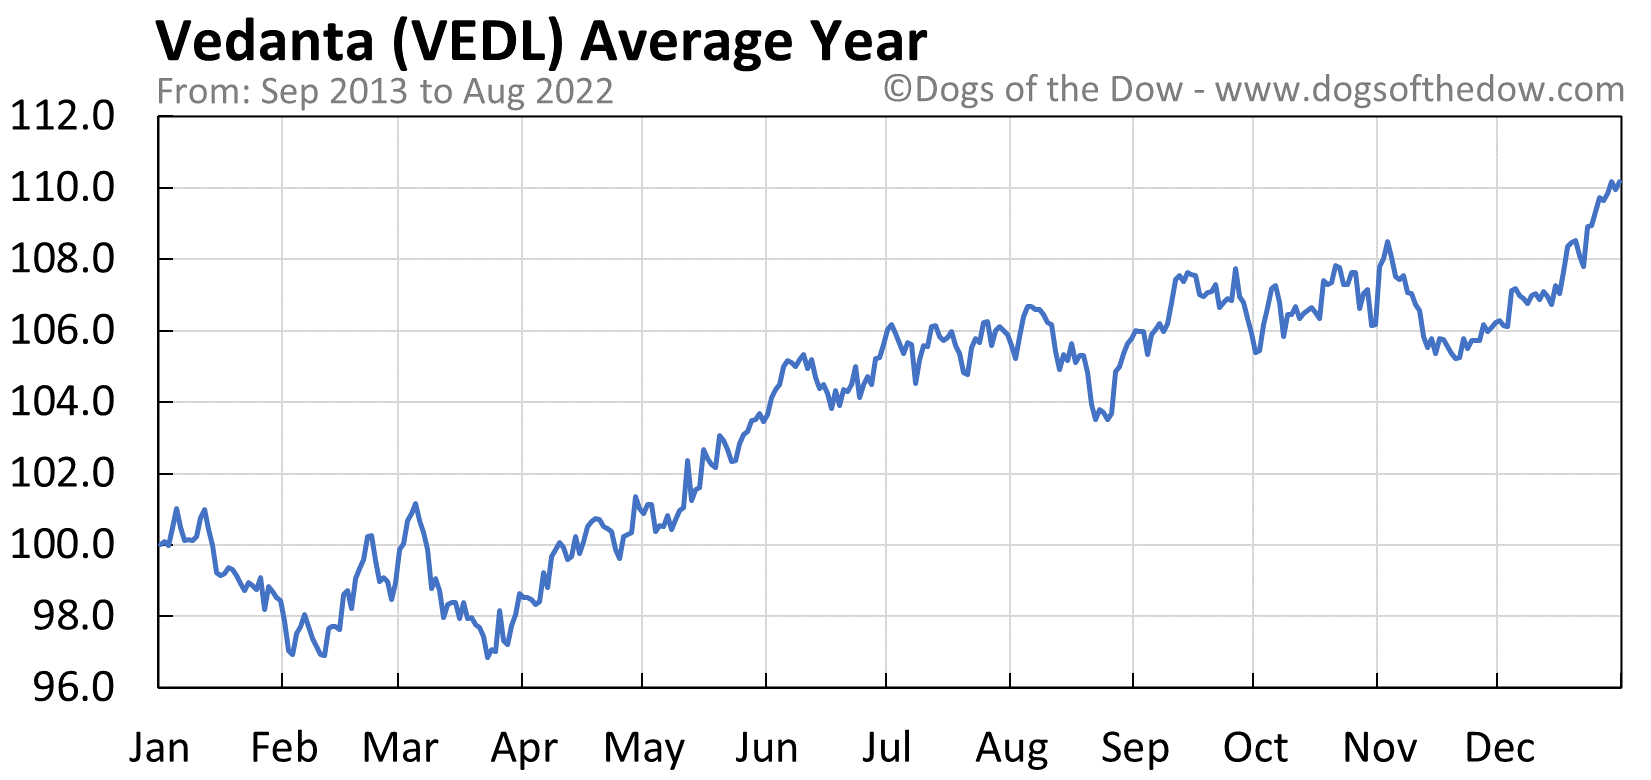 VEDL average year chart